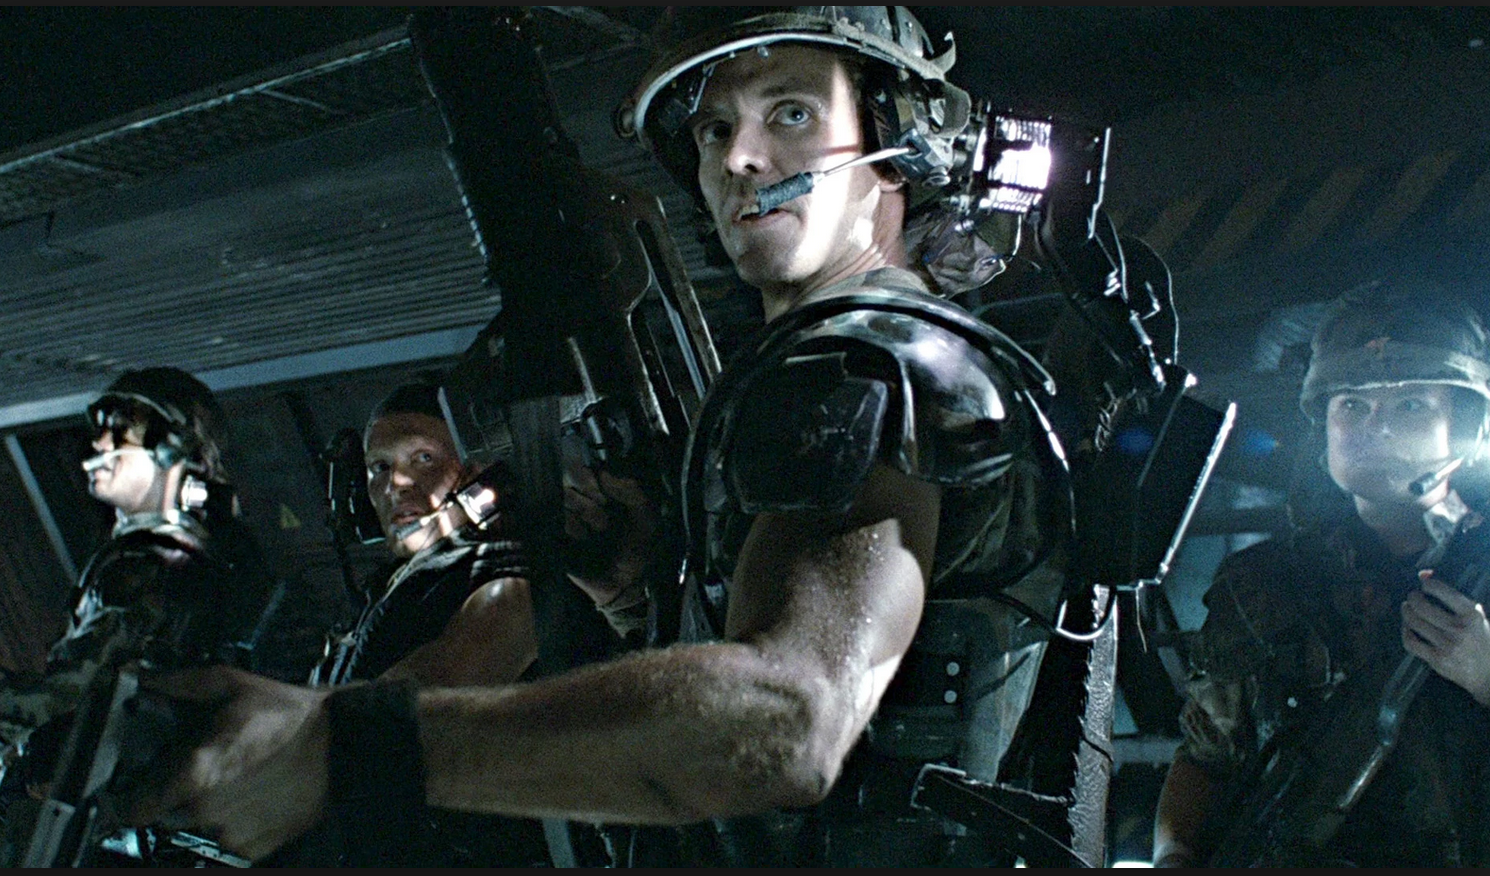 Aliens (1986) saw a squad of bad-ass marines get taken apart by an army of xenomorph